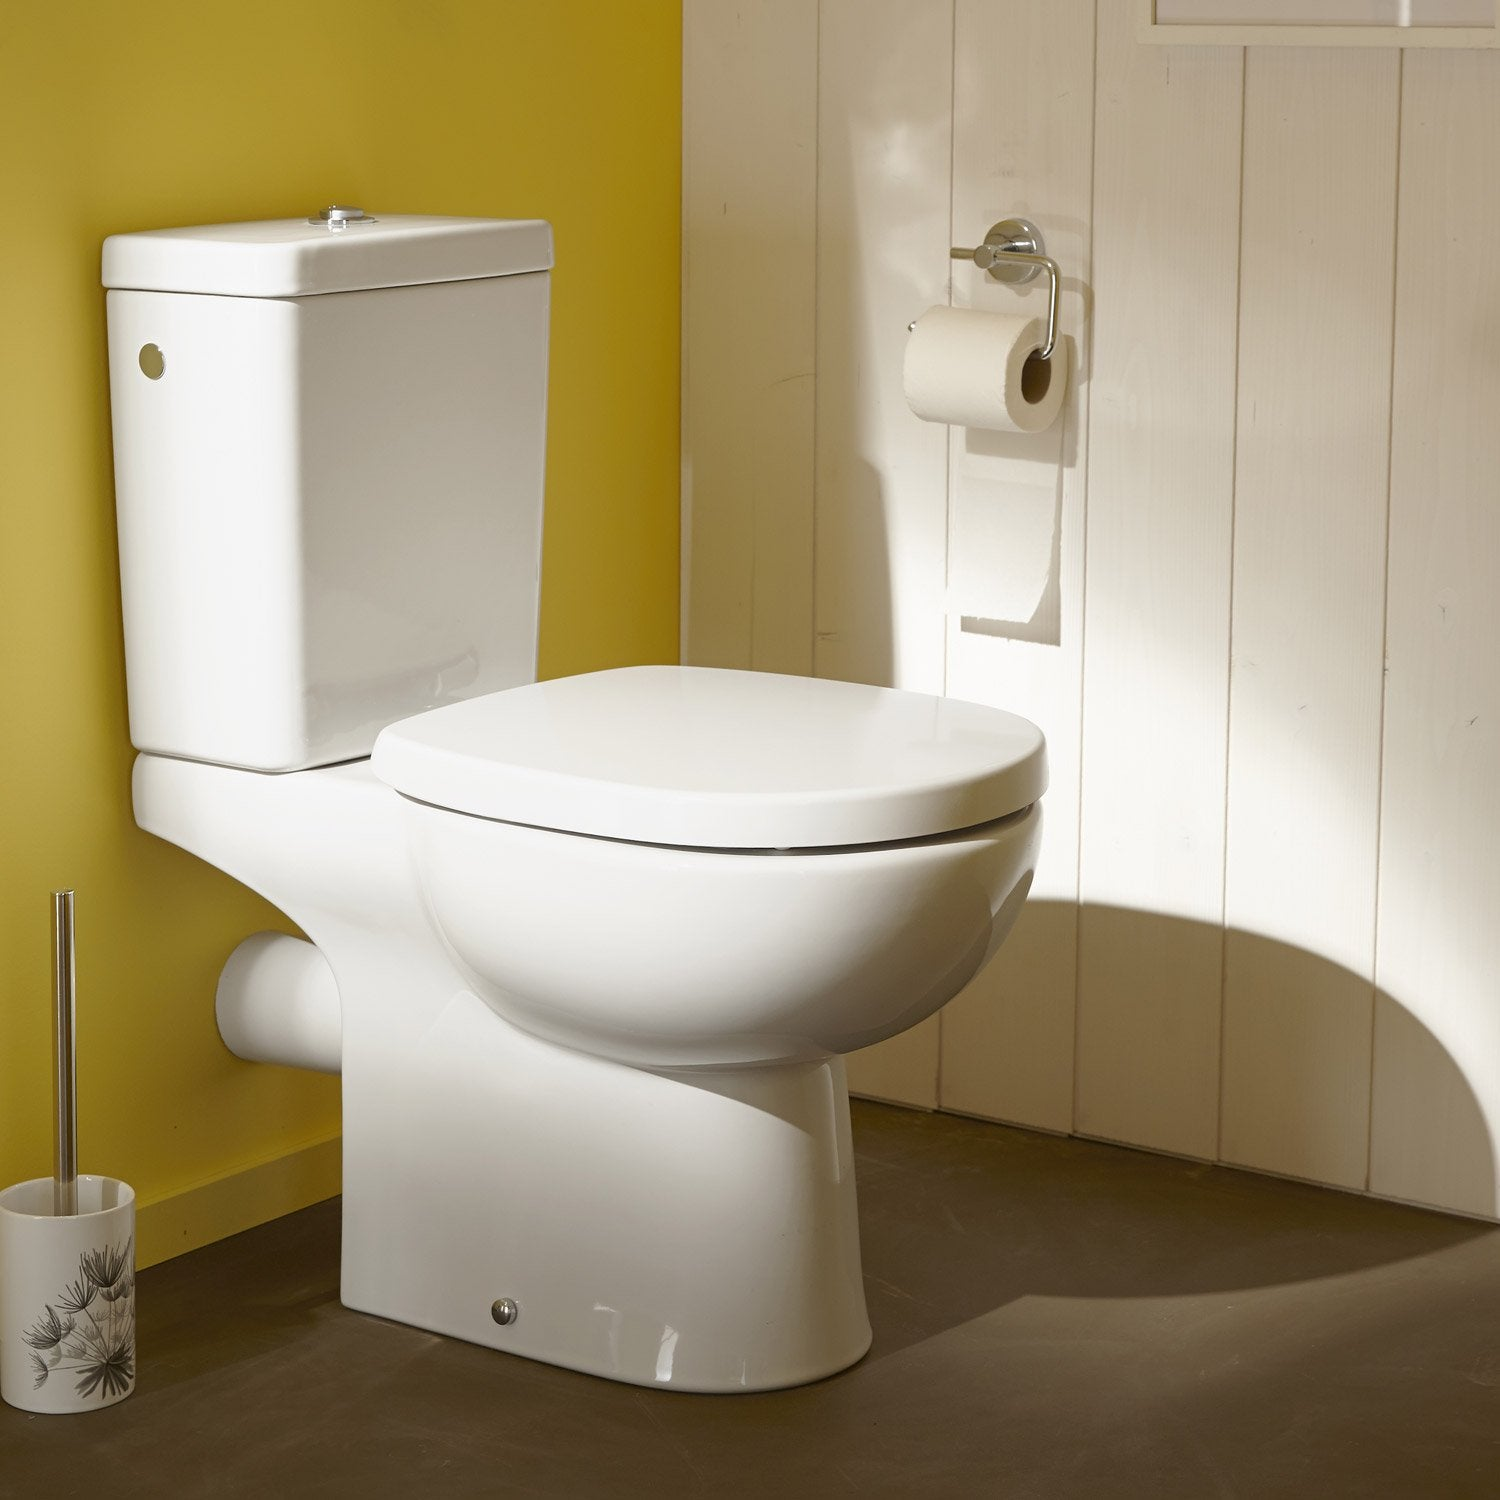 Deco wc leroy merlin for Leroy merlin wc broyeur